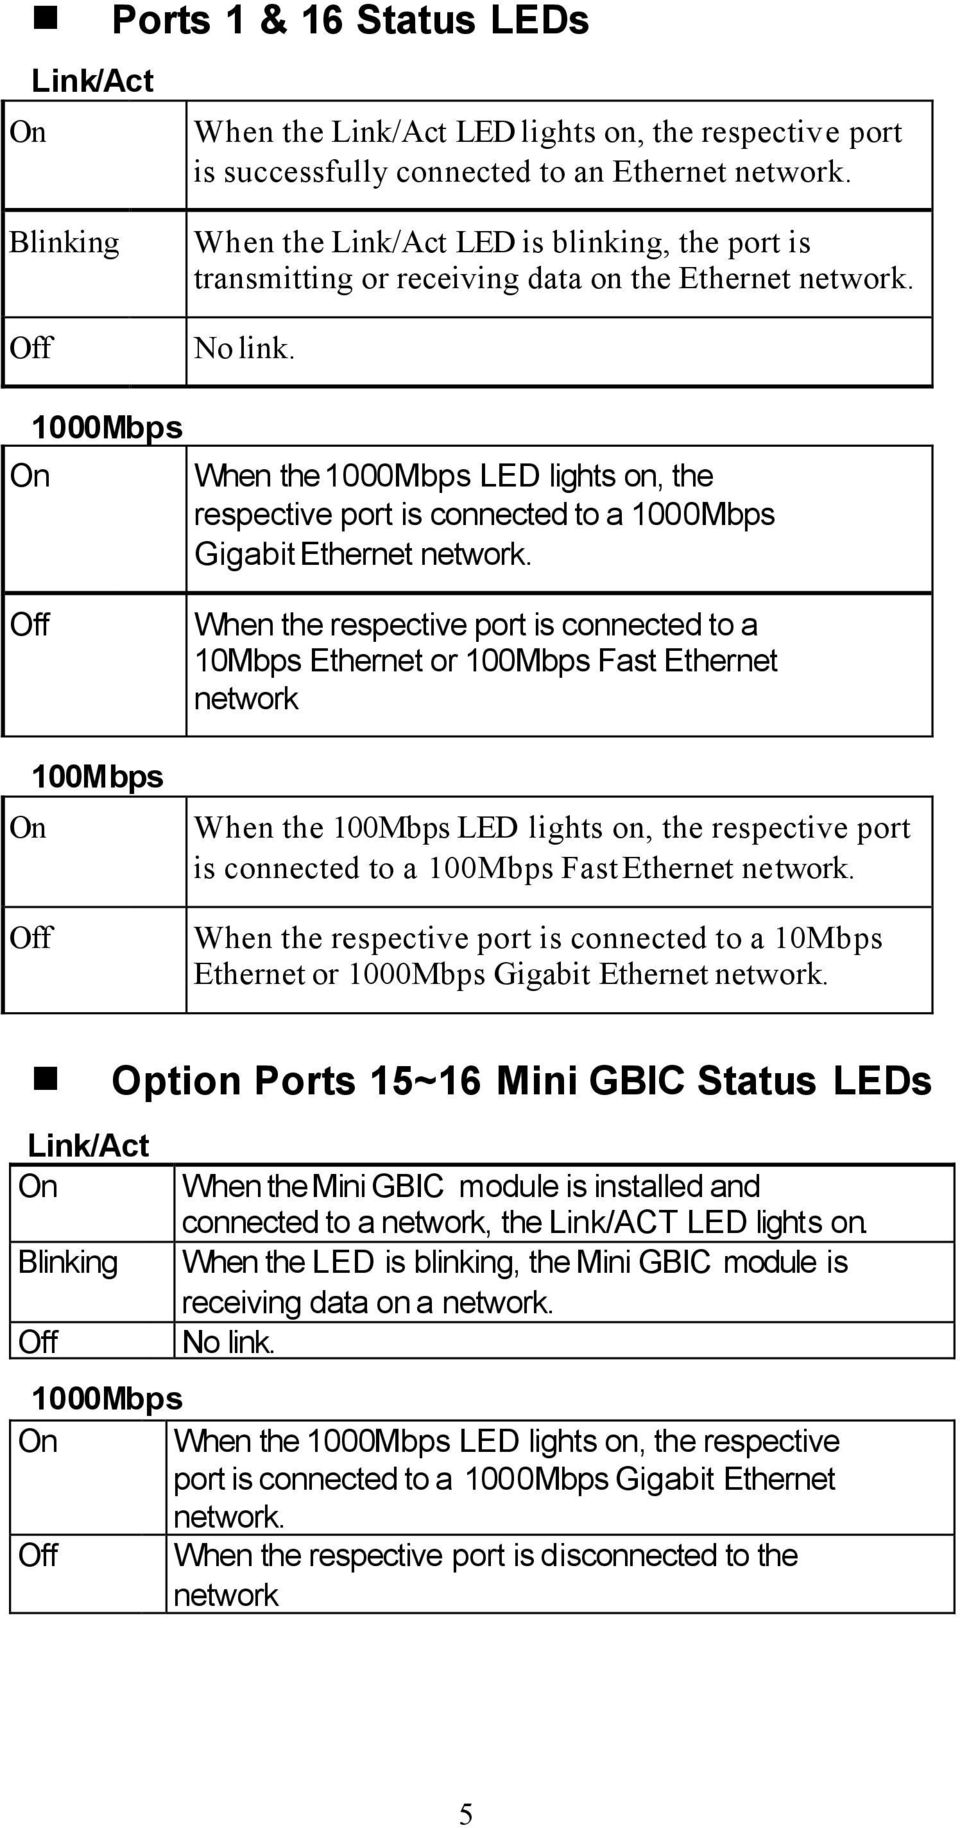 On 1000Mbps When the 1000Mbps LED lights on, the respective port is connected to a 1000Mbps Gigabit Ethernet network.